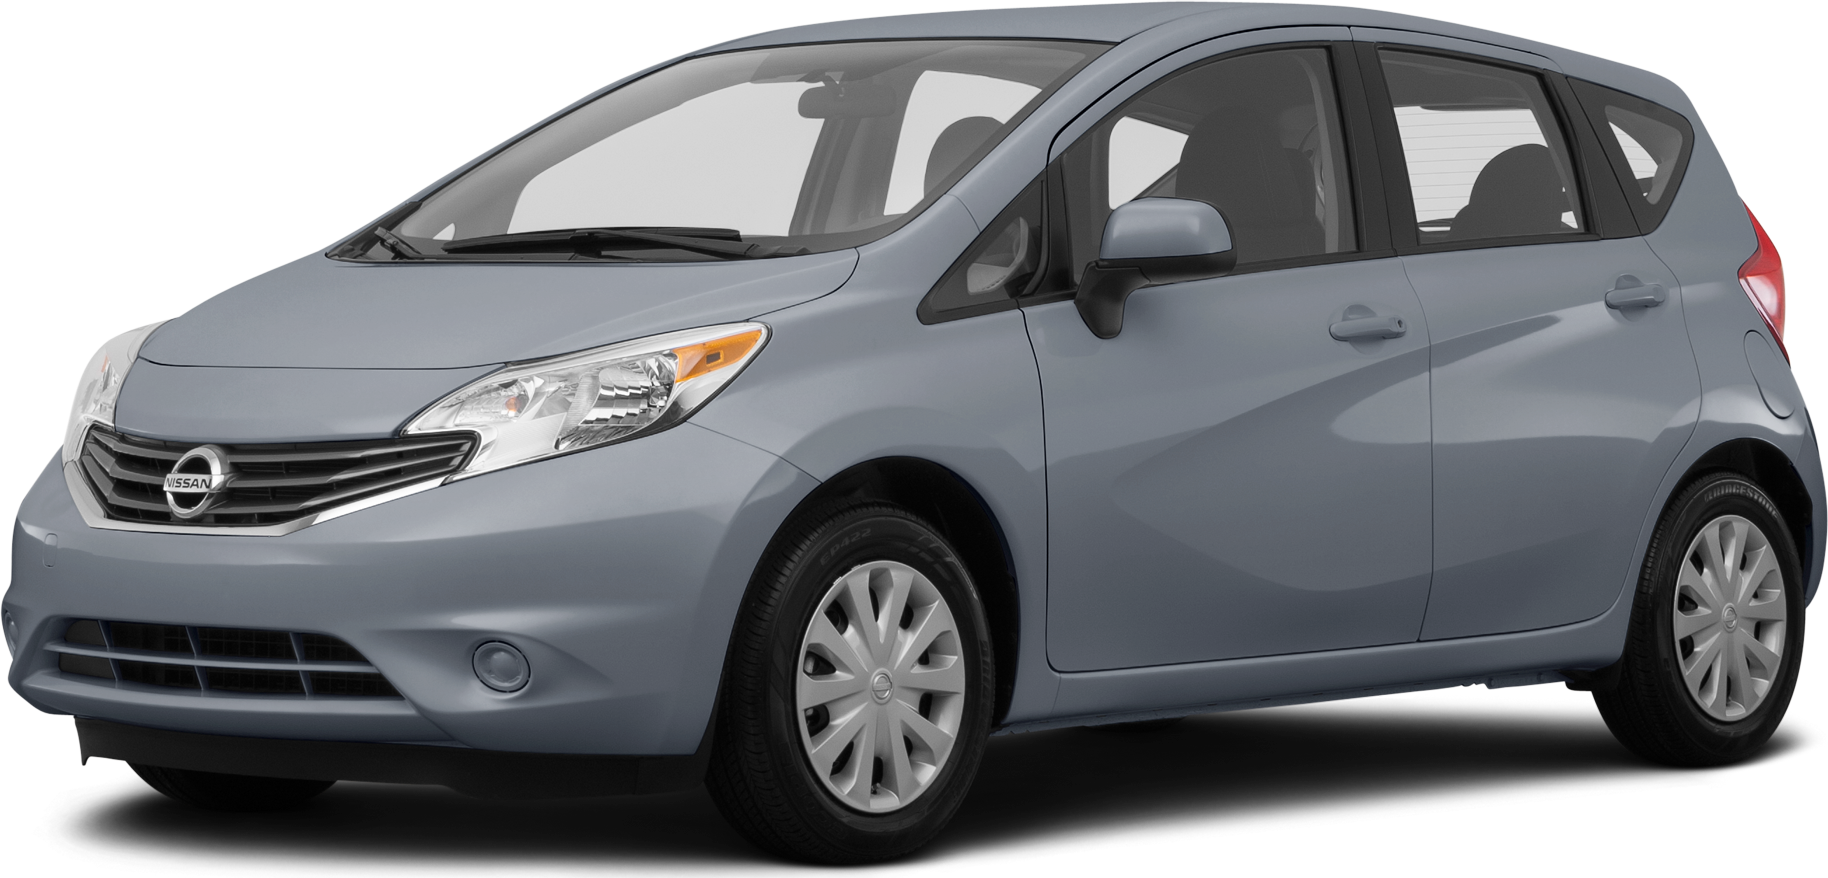 Used 2014 Nissan Versa Values Cars For Sale Kelley Blue Book